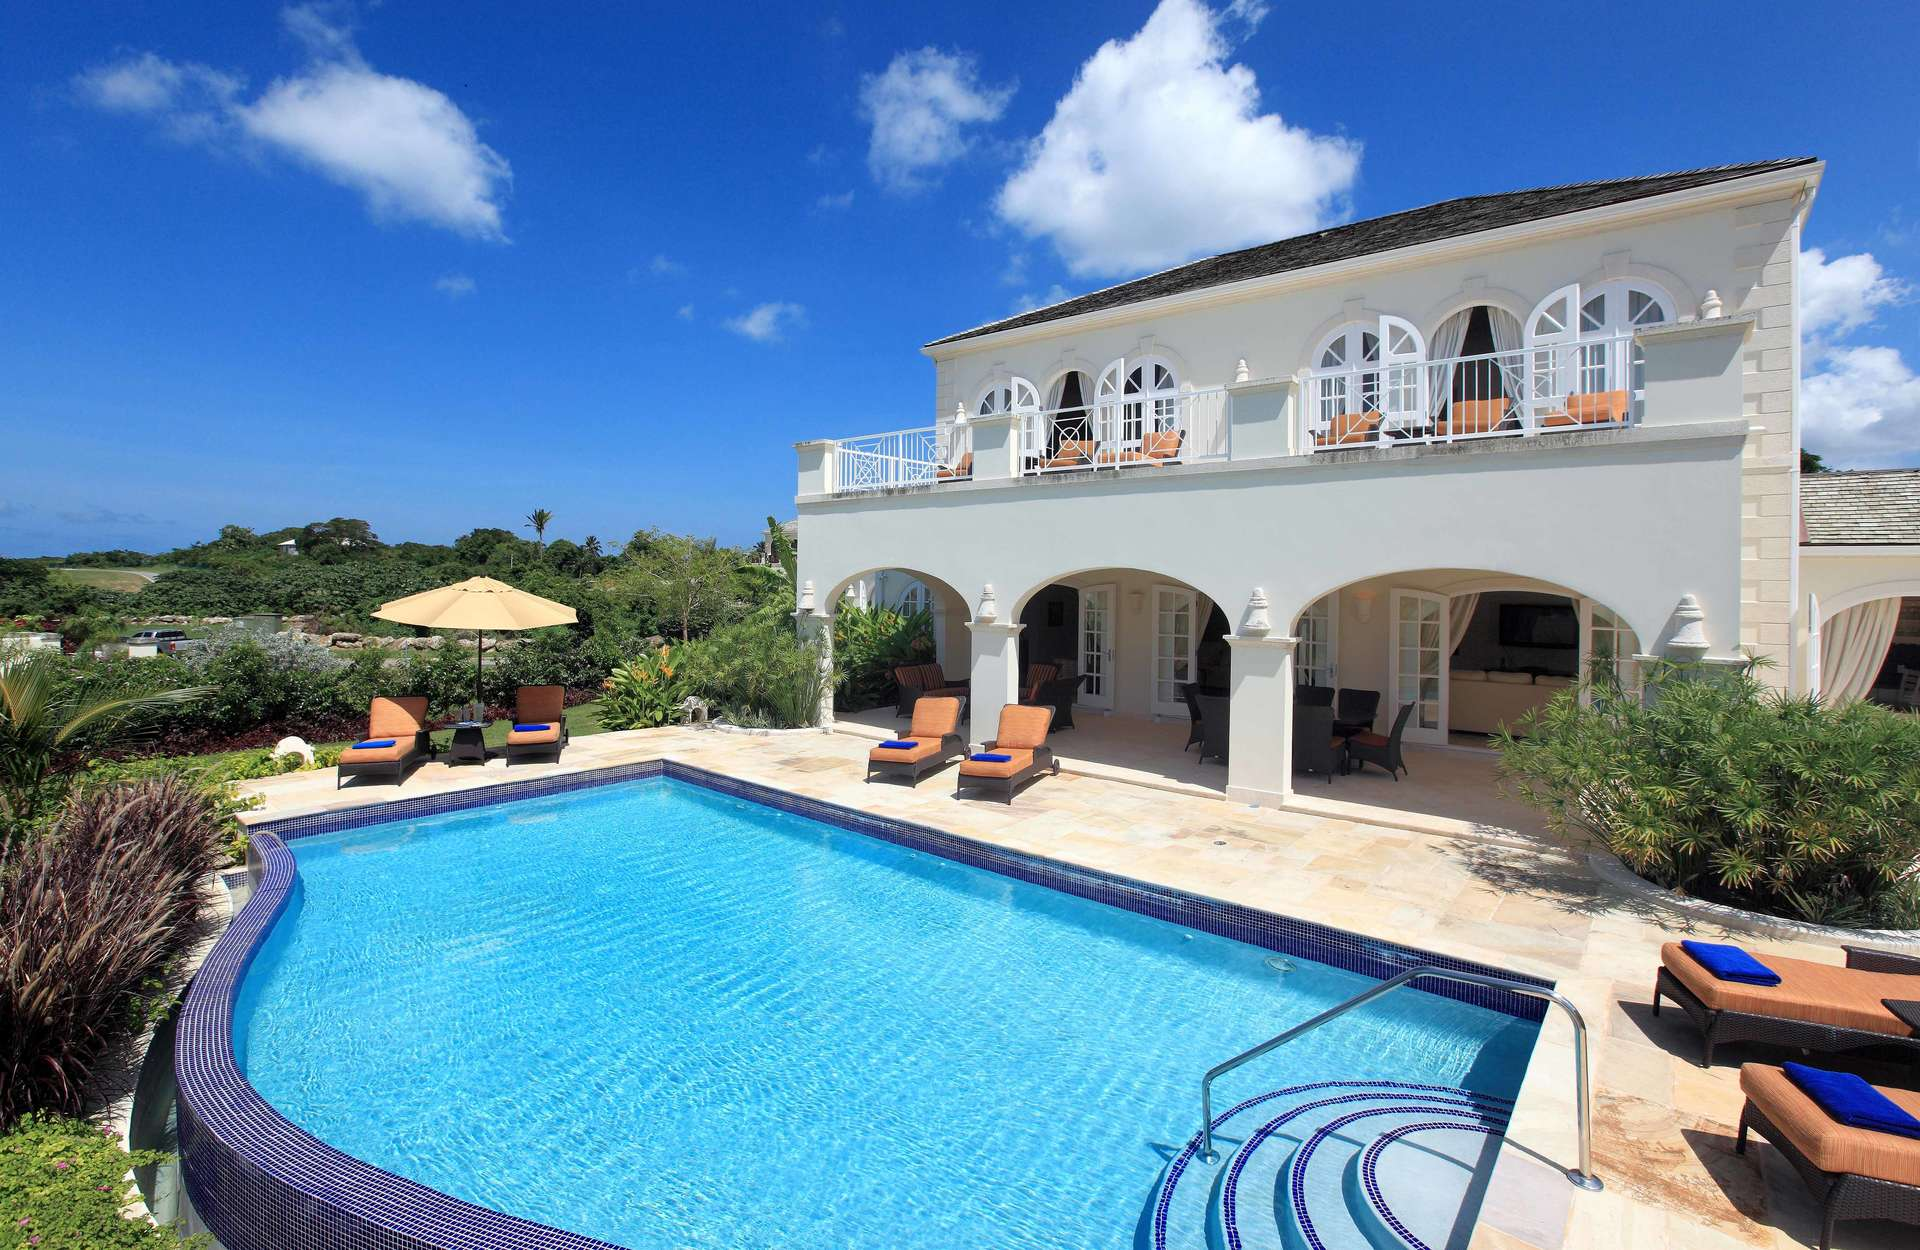 Luxury villa rentals caribbean - Barbados - St james - Royal westmoreland golf resort - Mahogany Drive 7 - Image 1/10